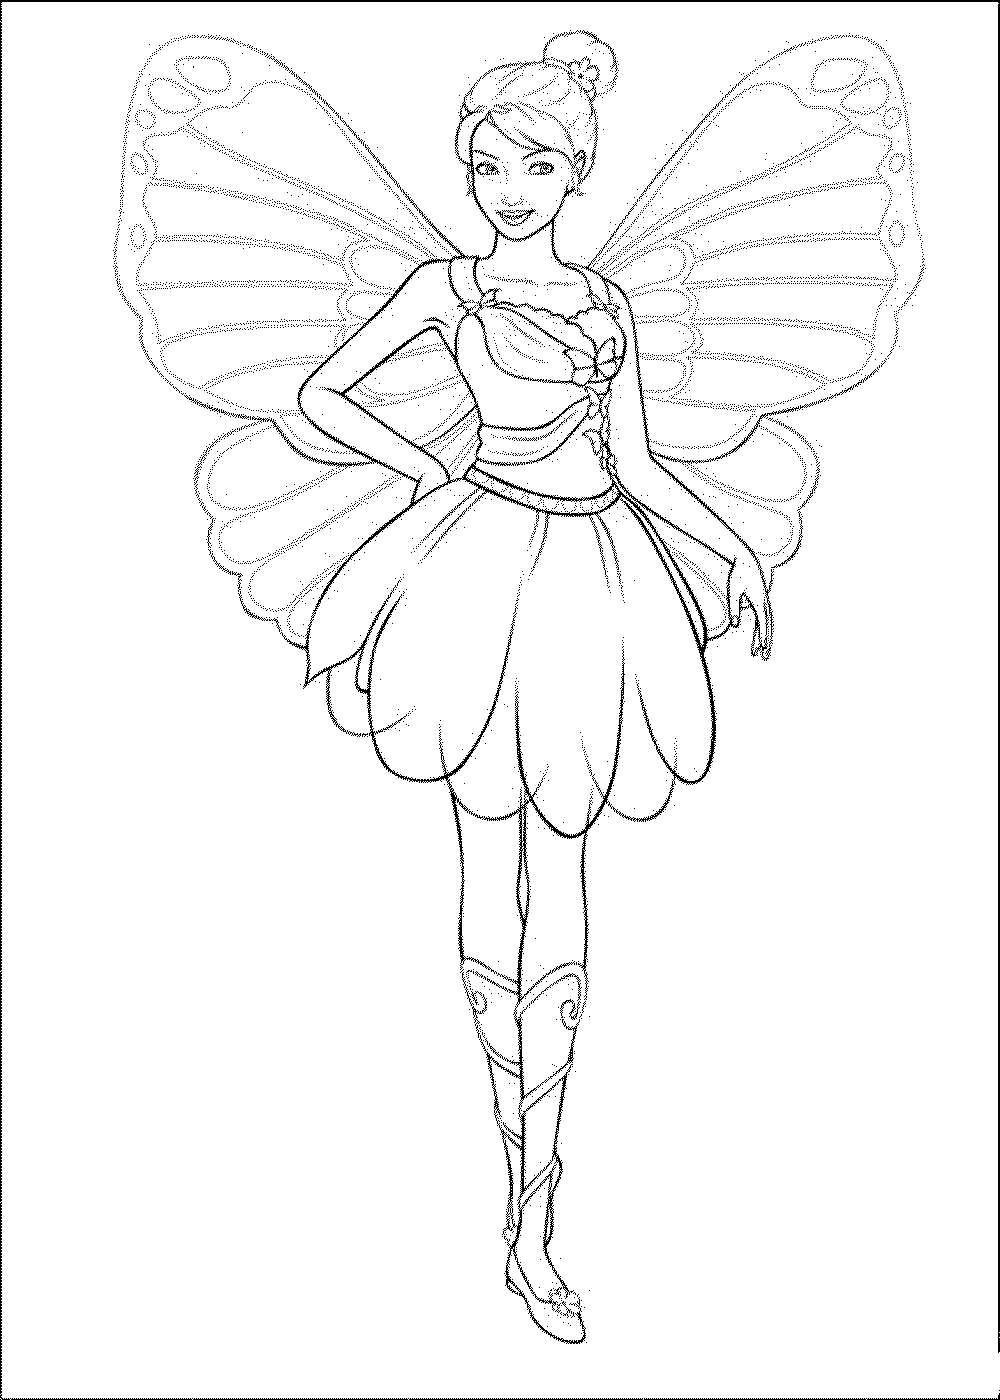 Big Fairy Princess Coloring Pages Printable Barbie Mariposa And The